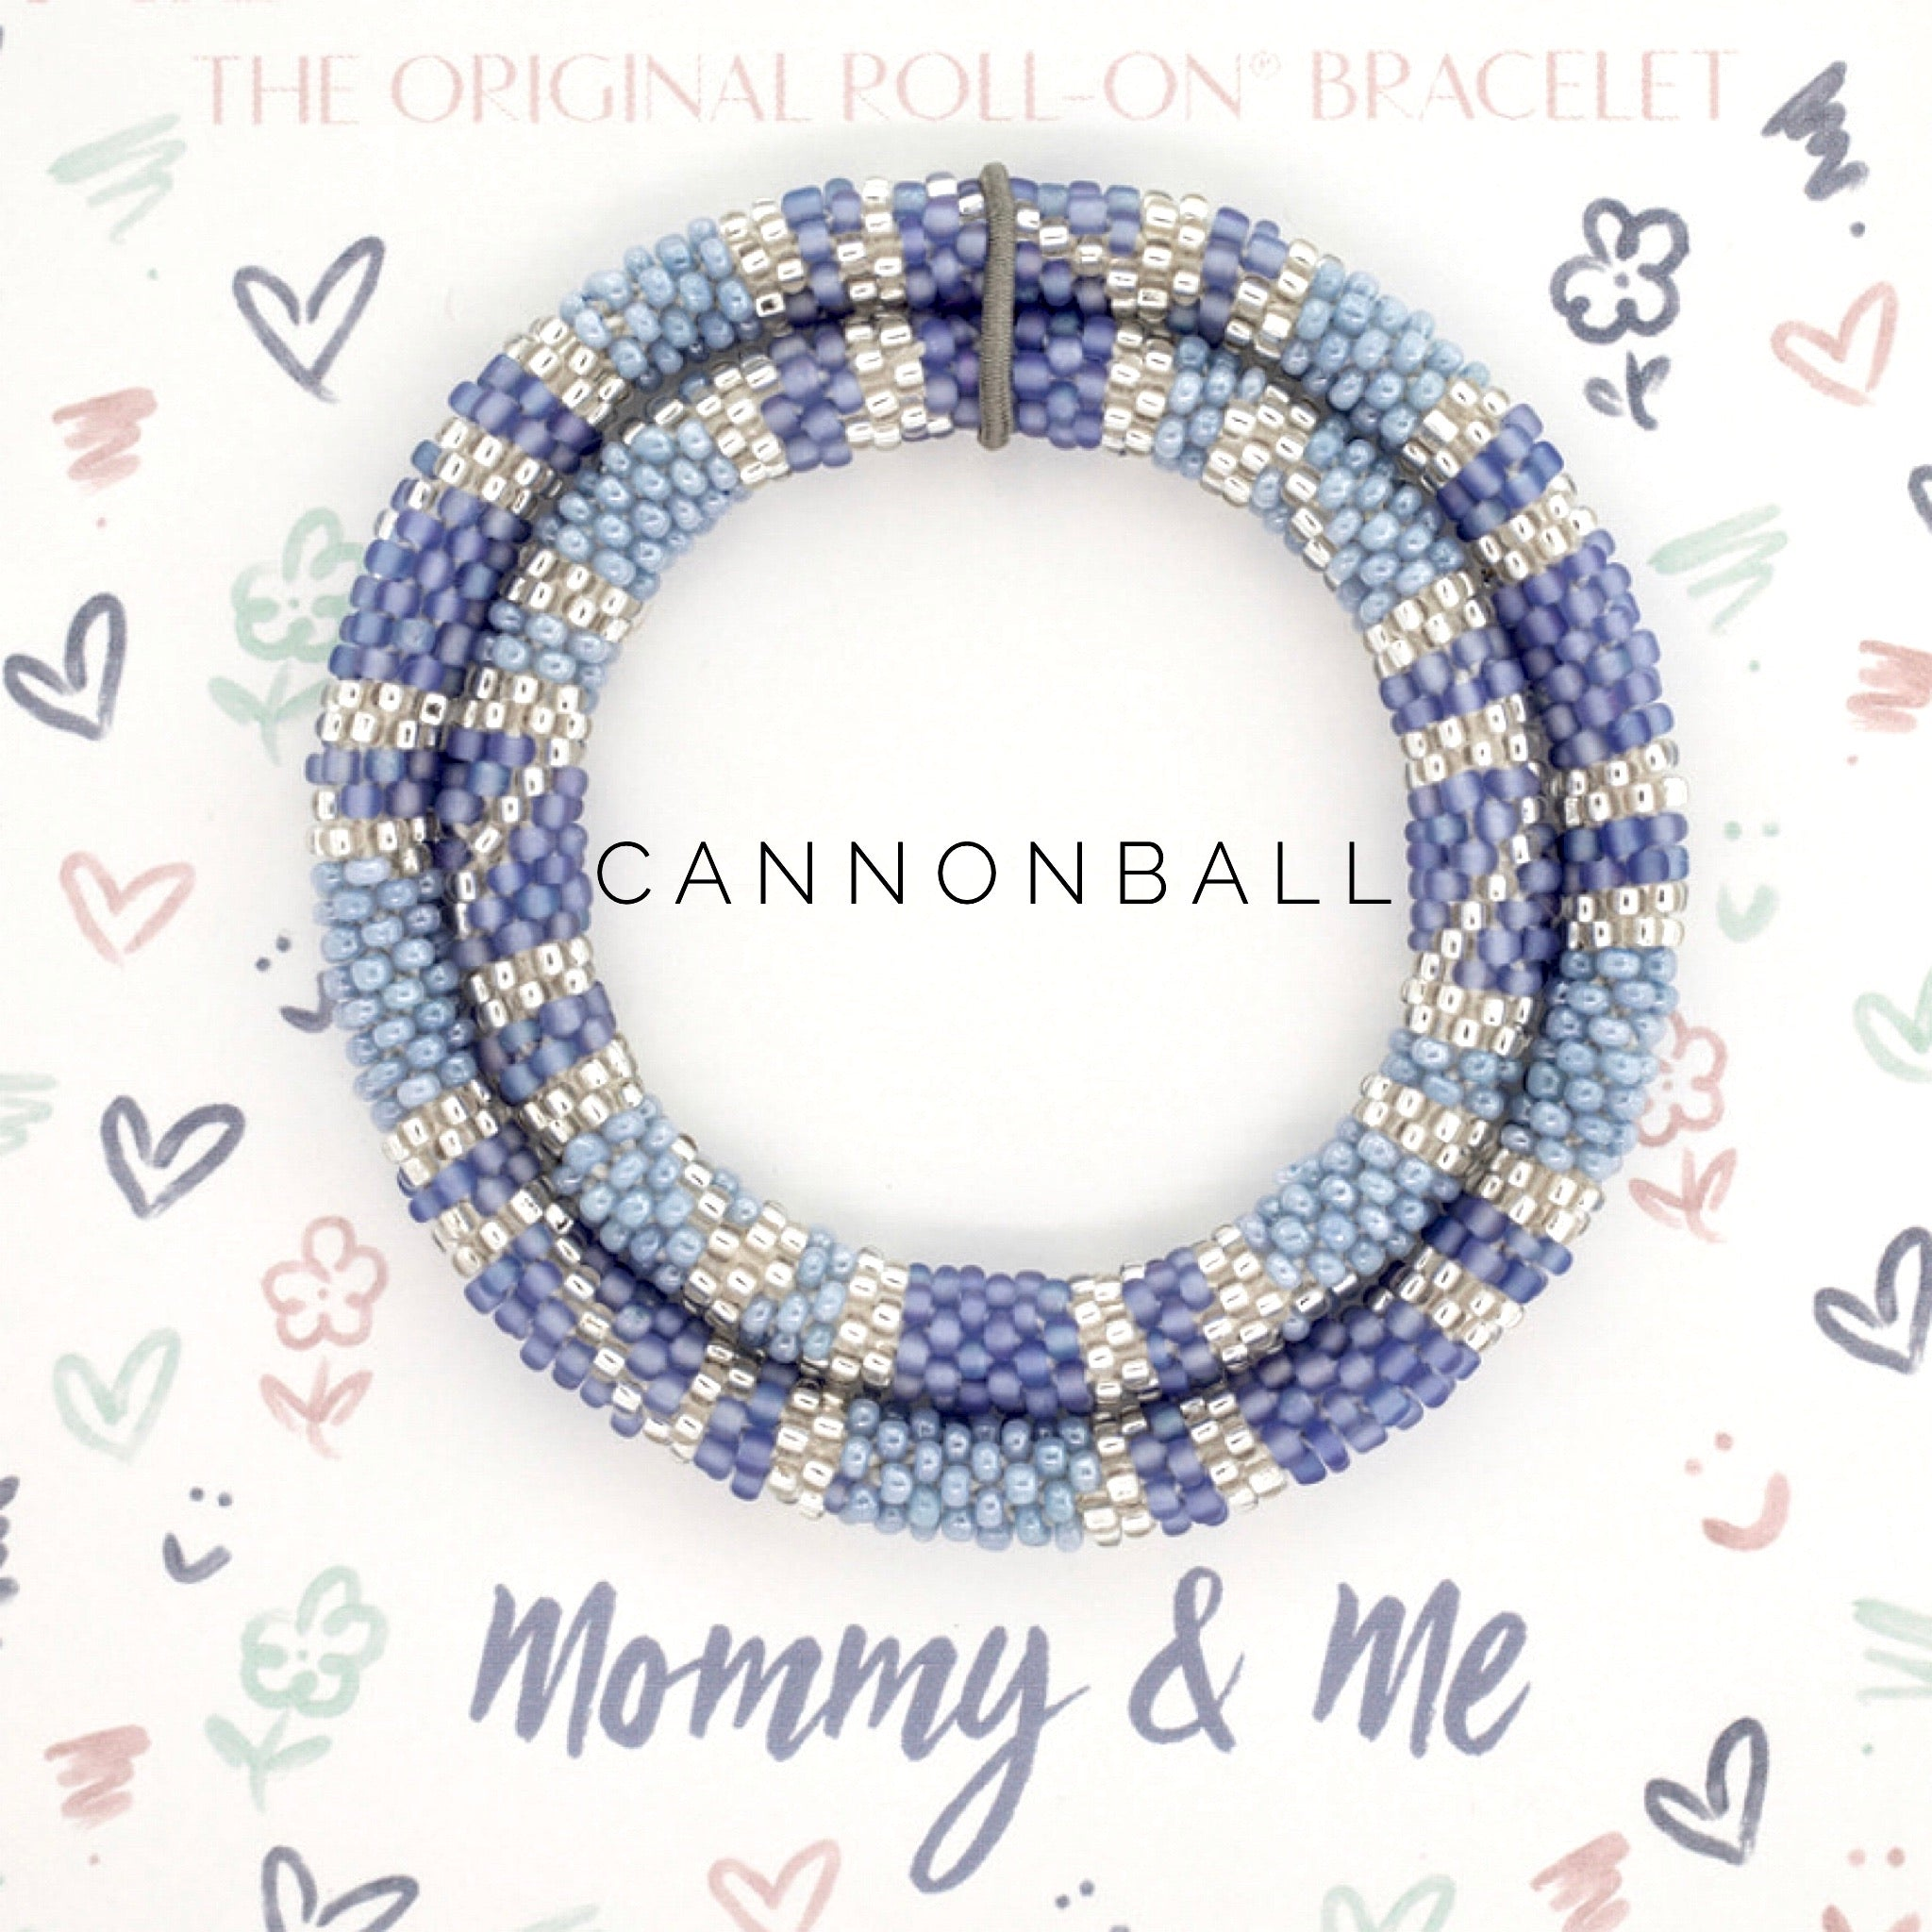 Cannonball Bracelet- Mommy and Me